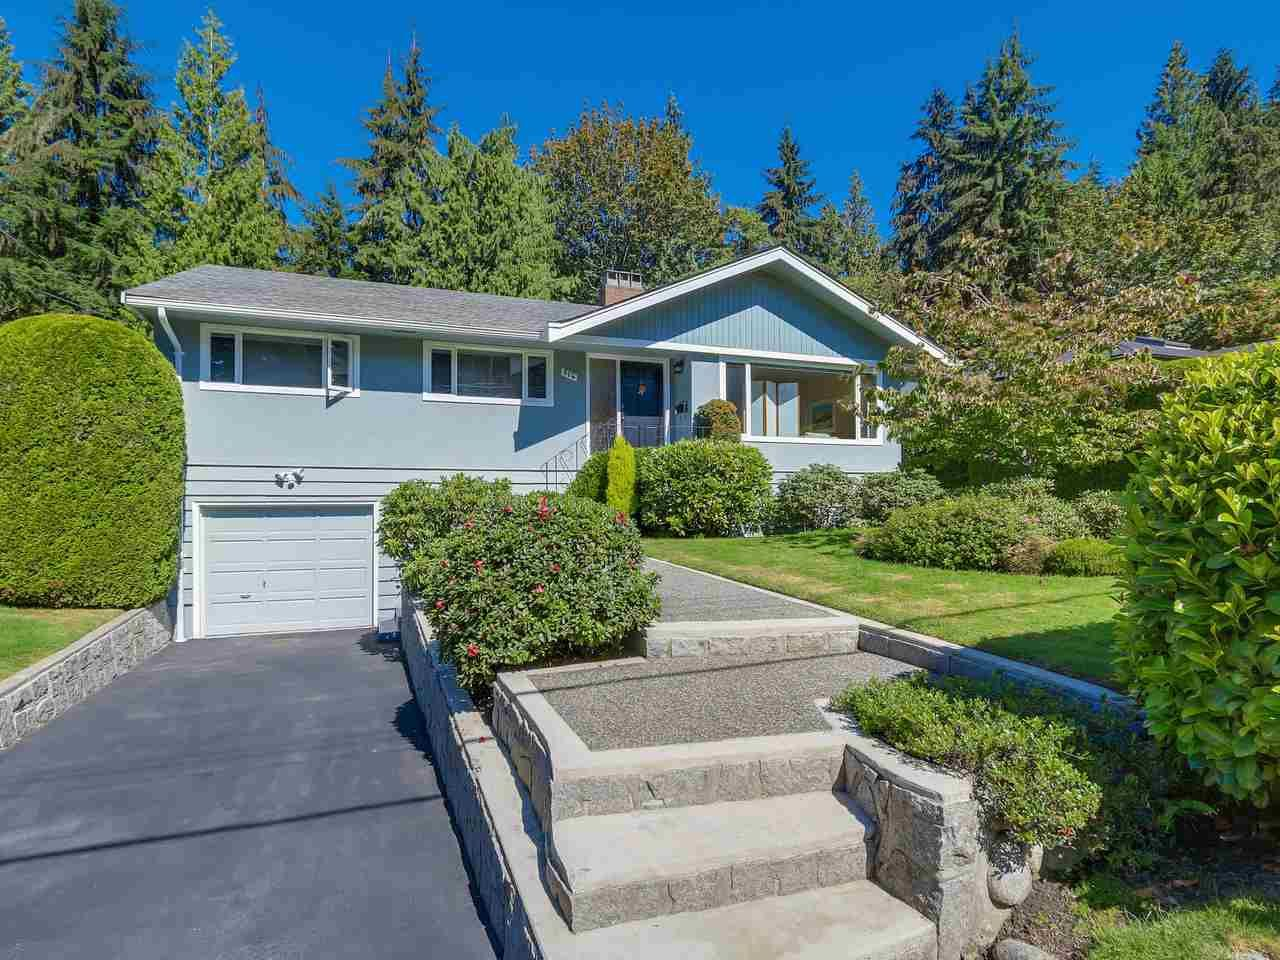 Main Photo: 974 BELVEDERE DRIVE in North Vancouver: Canyon Heights NV House for sale : MLS®# R2106348